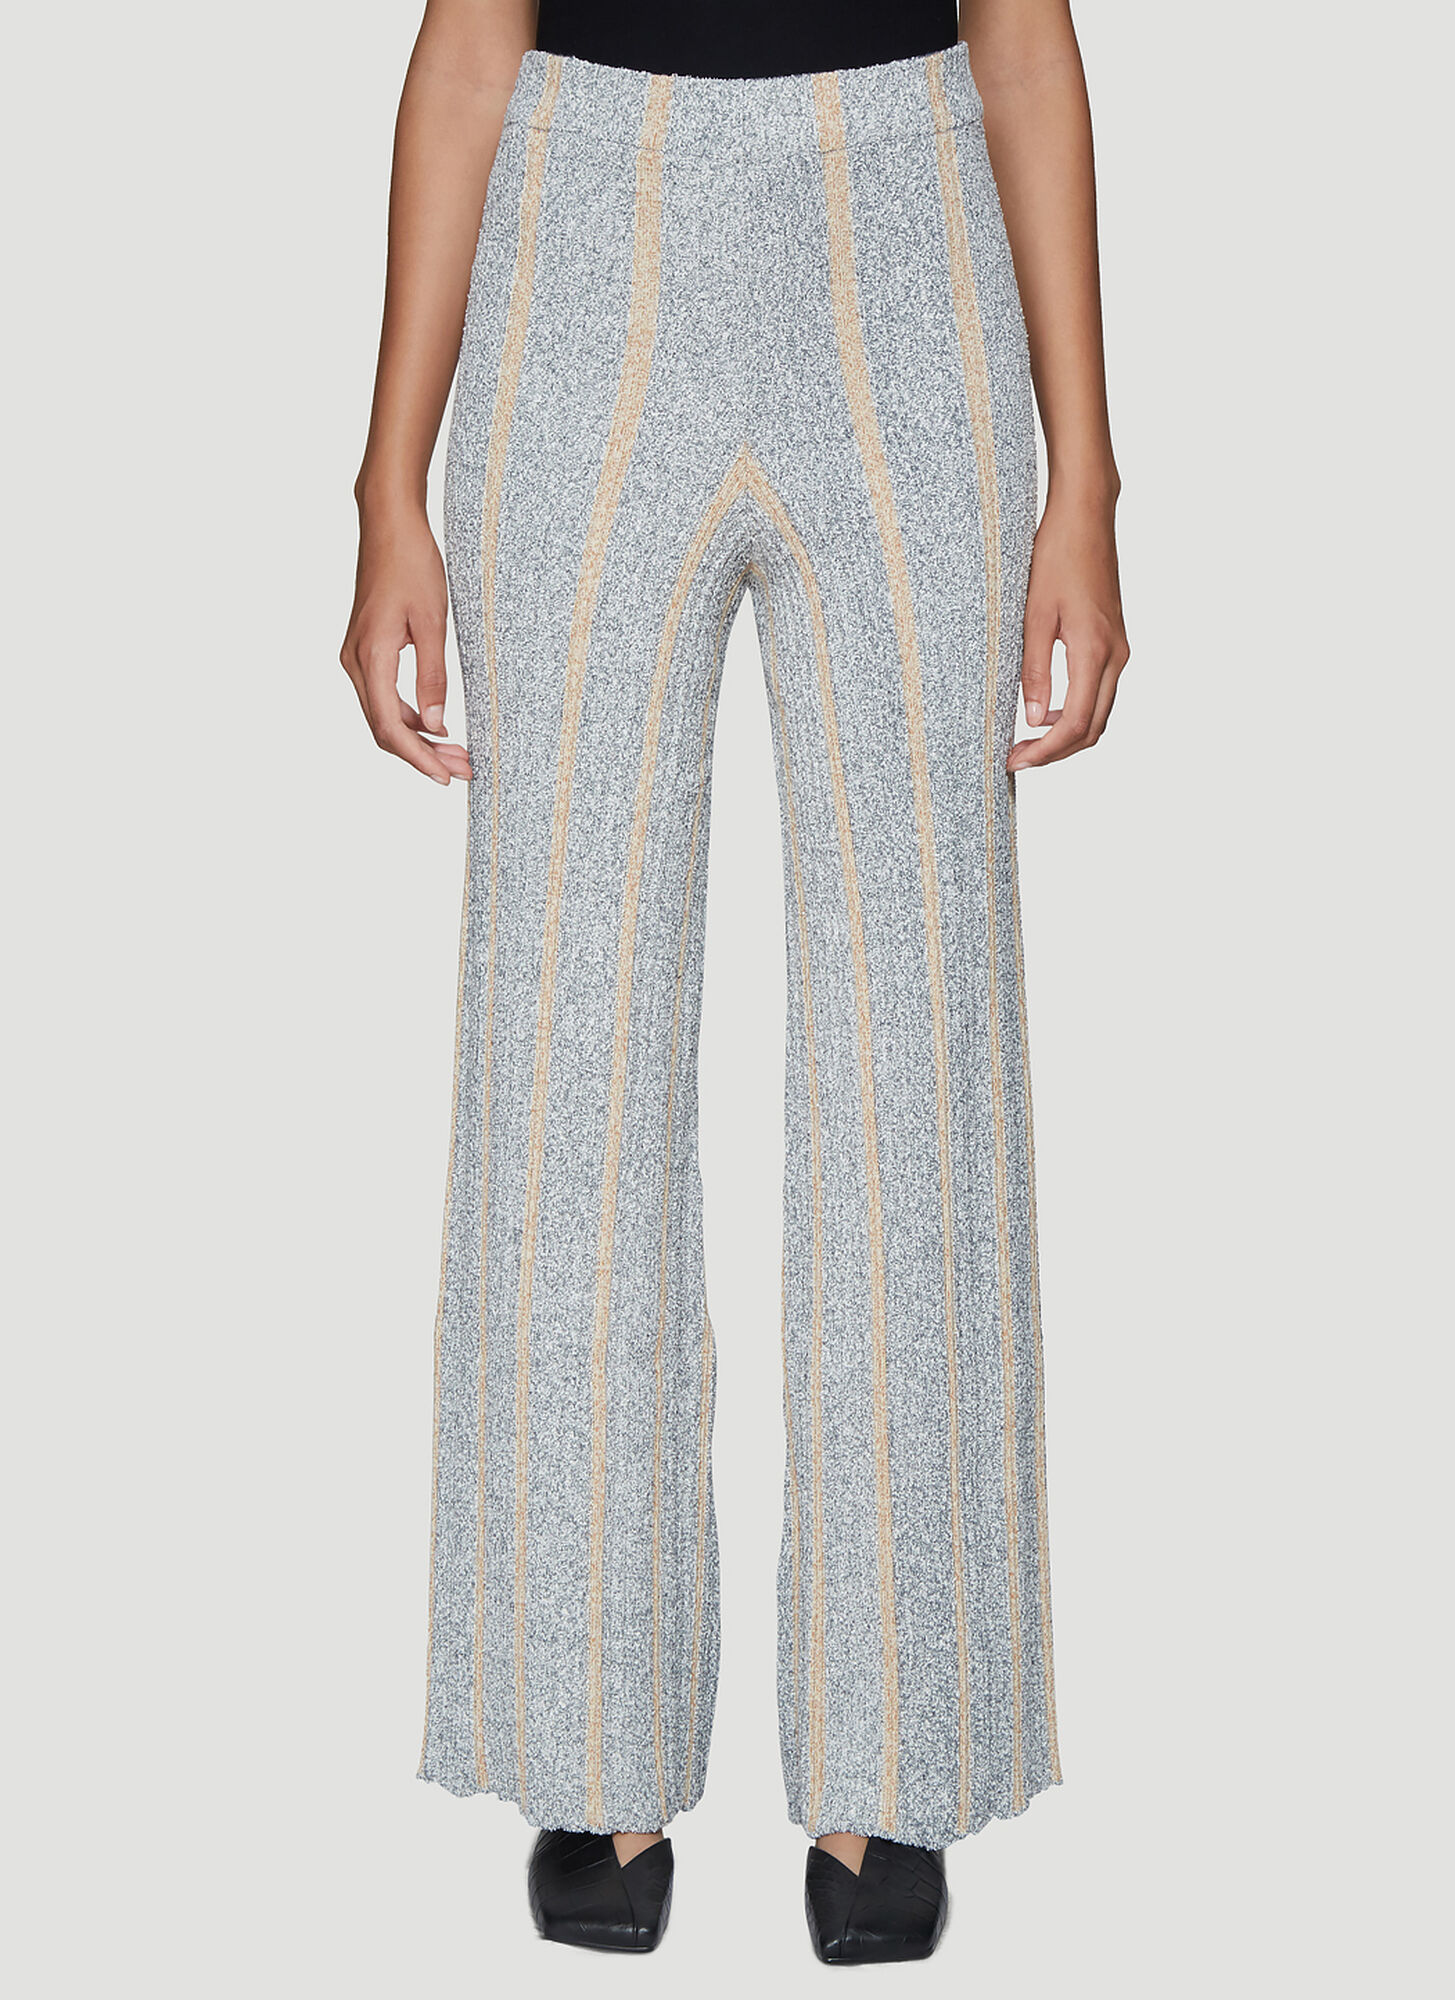 Jil Sander Ribbed Knitted Pants in Grey